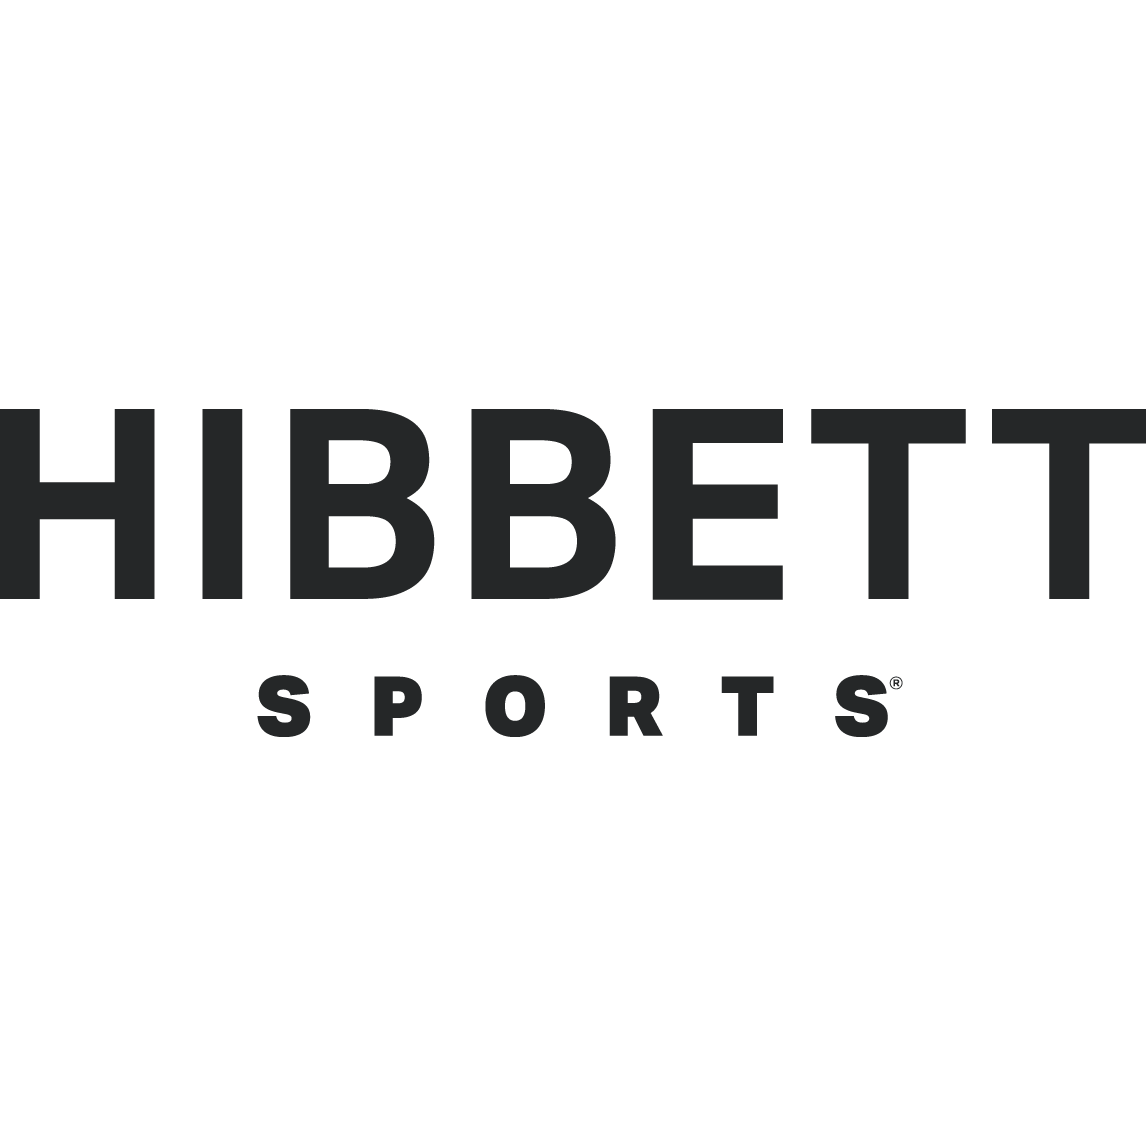 Hibbett Wholesale, Inc